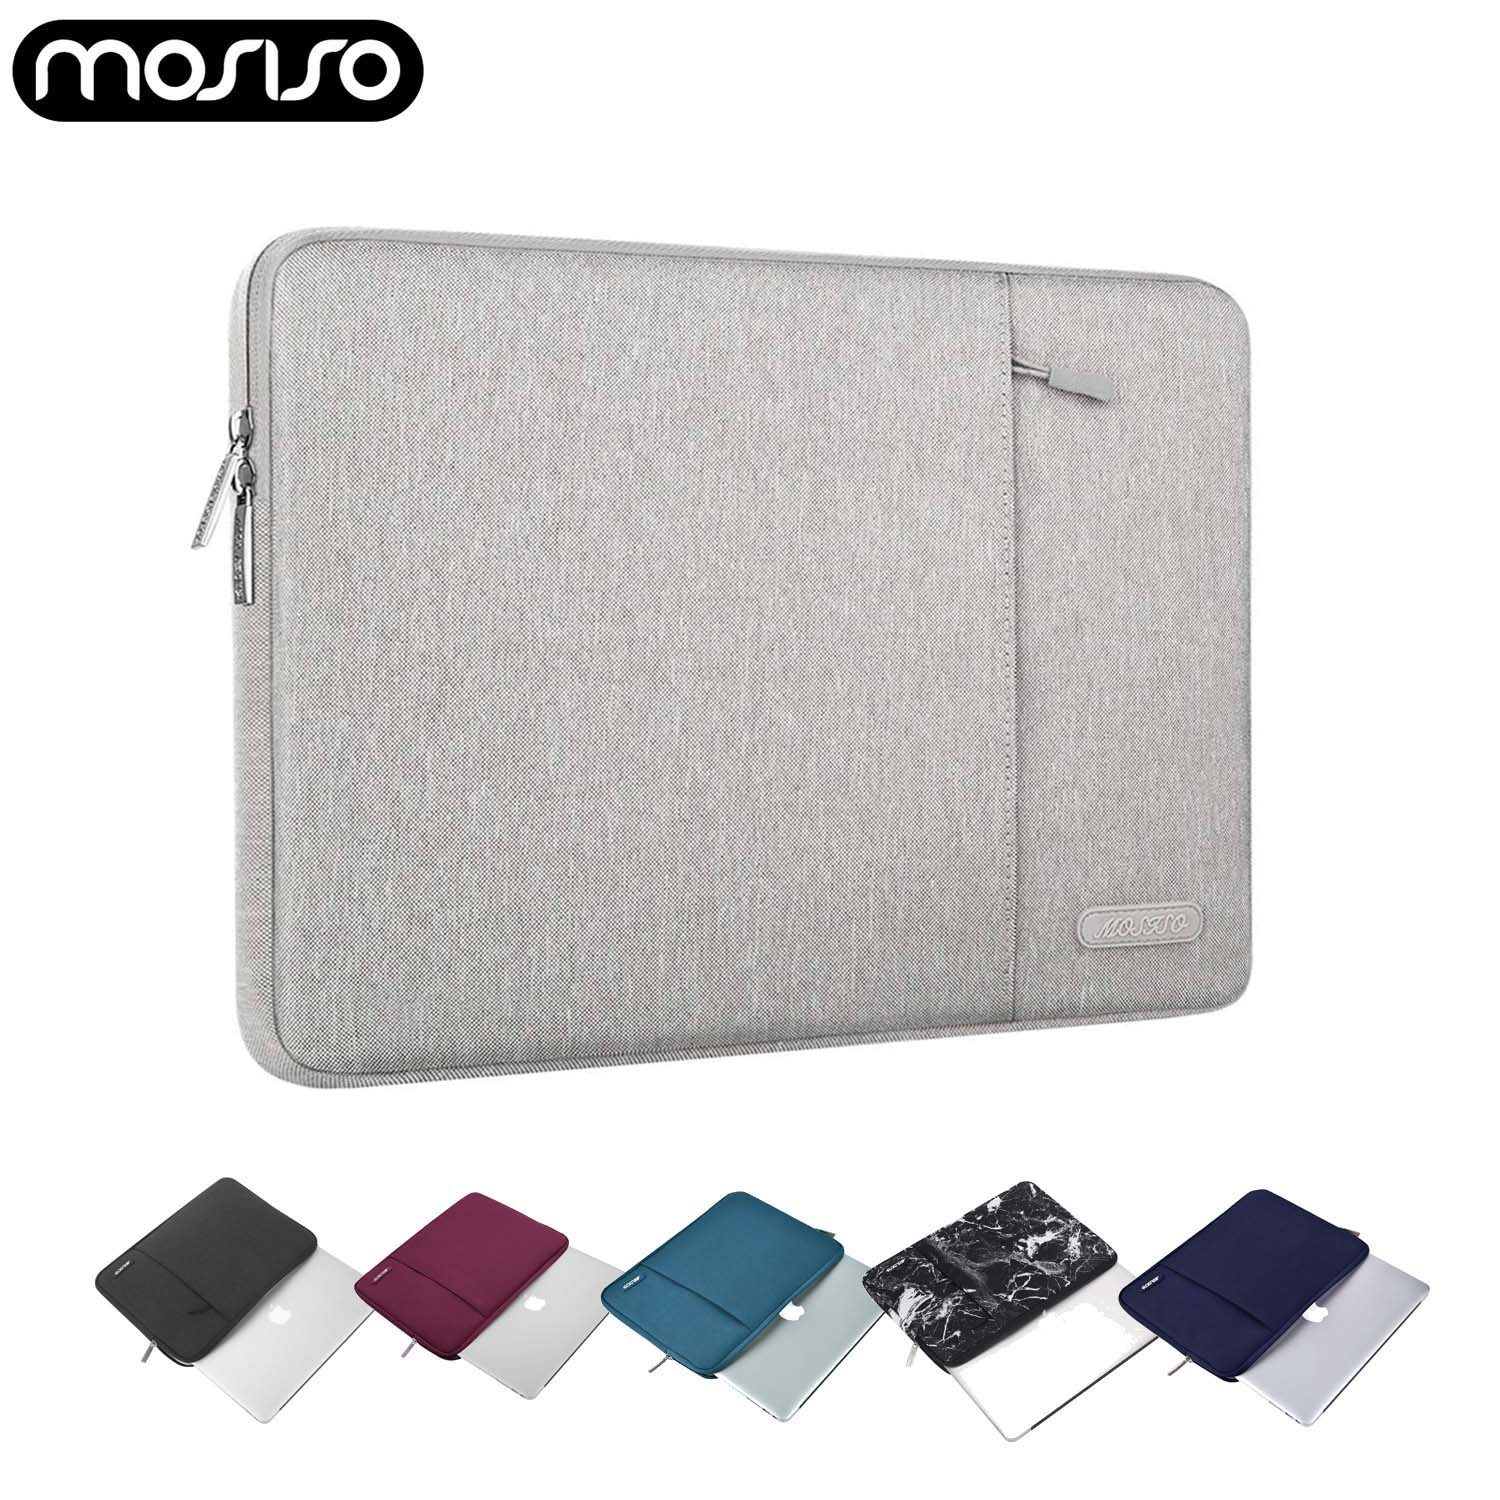 MOSISO Laptop Sleeve Case Bag For Macbook Air Pro 13 15 16 Touch Bar Notebook Sleeve Cover 11 12 13 14 15inch For Dell/HP/Acer